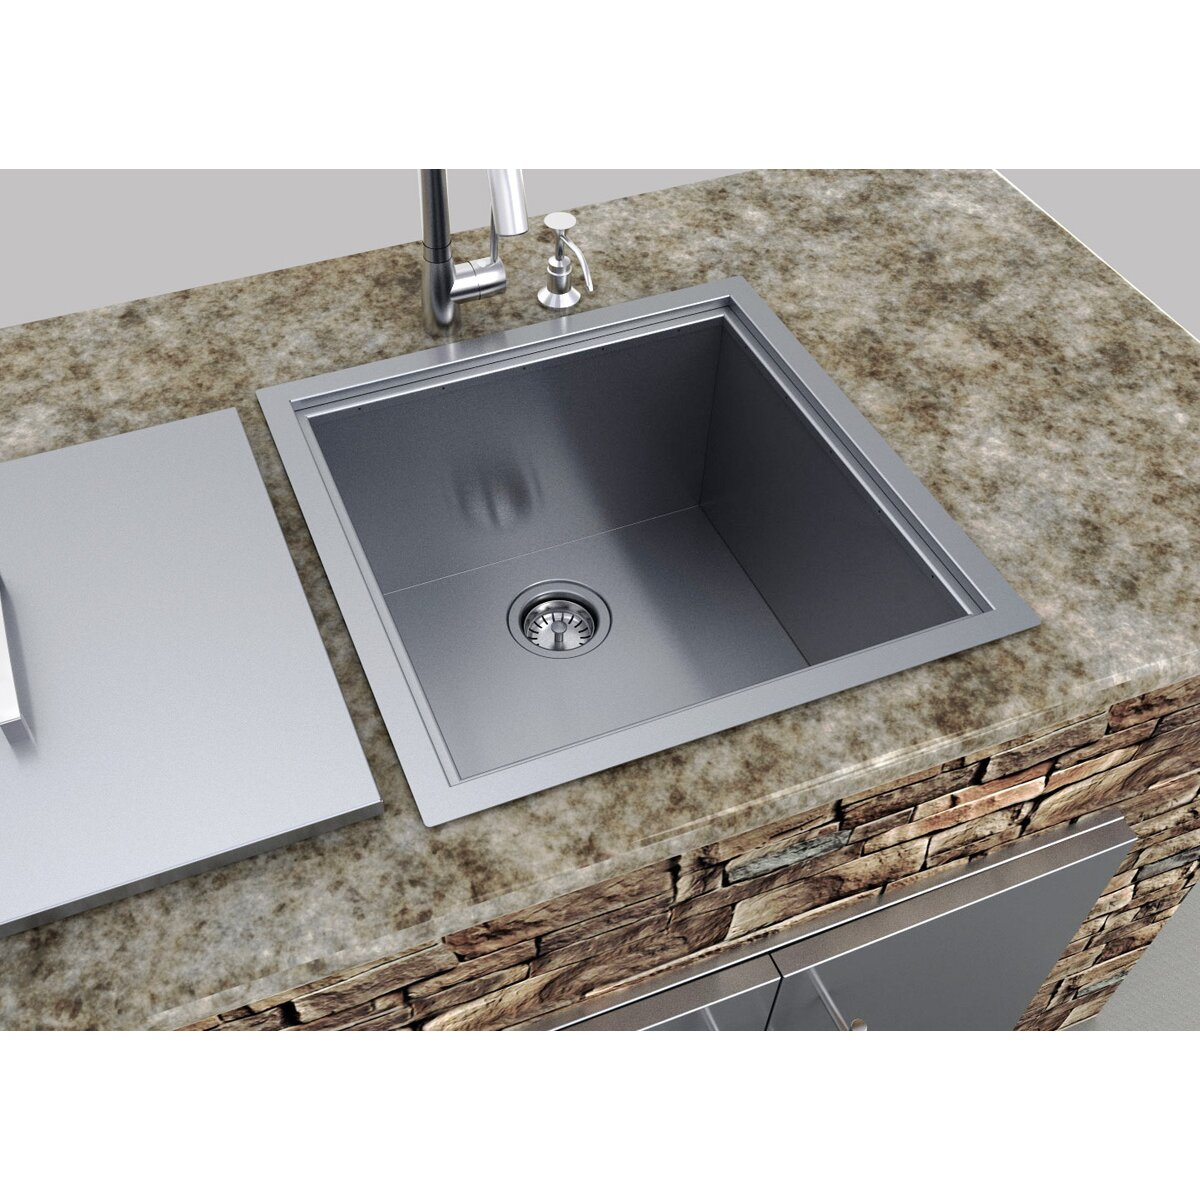 Outdoor Kitchen Over Under Basin Sink with Cover Wayfair : Outdoor Kitchen Over Under 20 X 12 Basin Sink W Cover B SK20 from www.wayfair.com size 1200 x 1200 jpeg 305kB